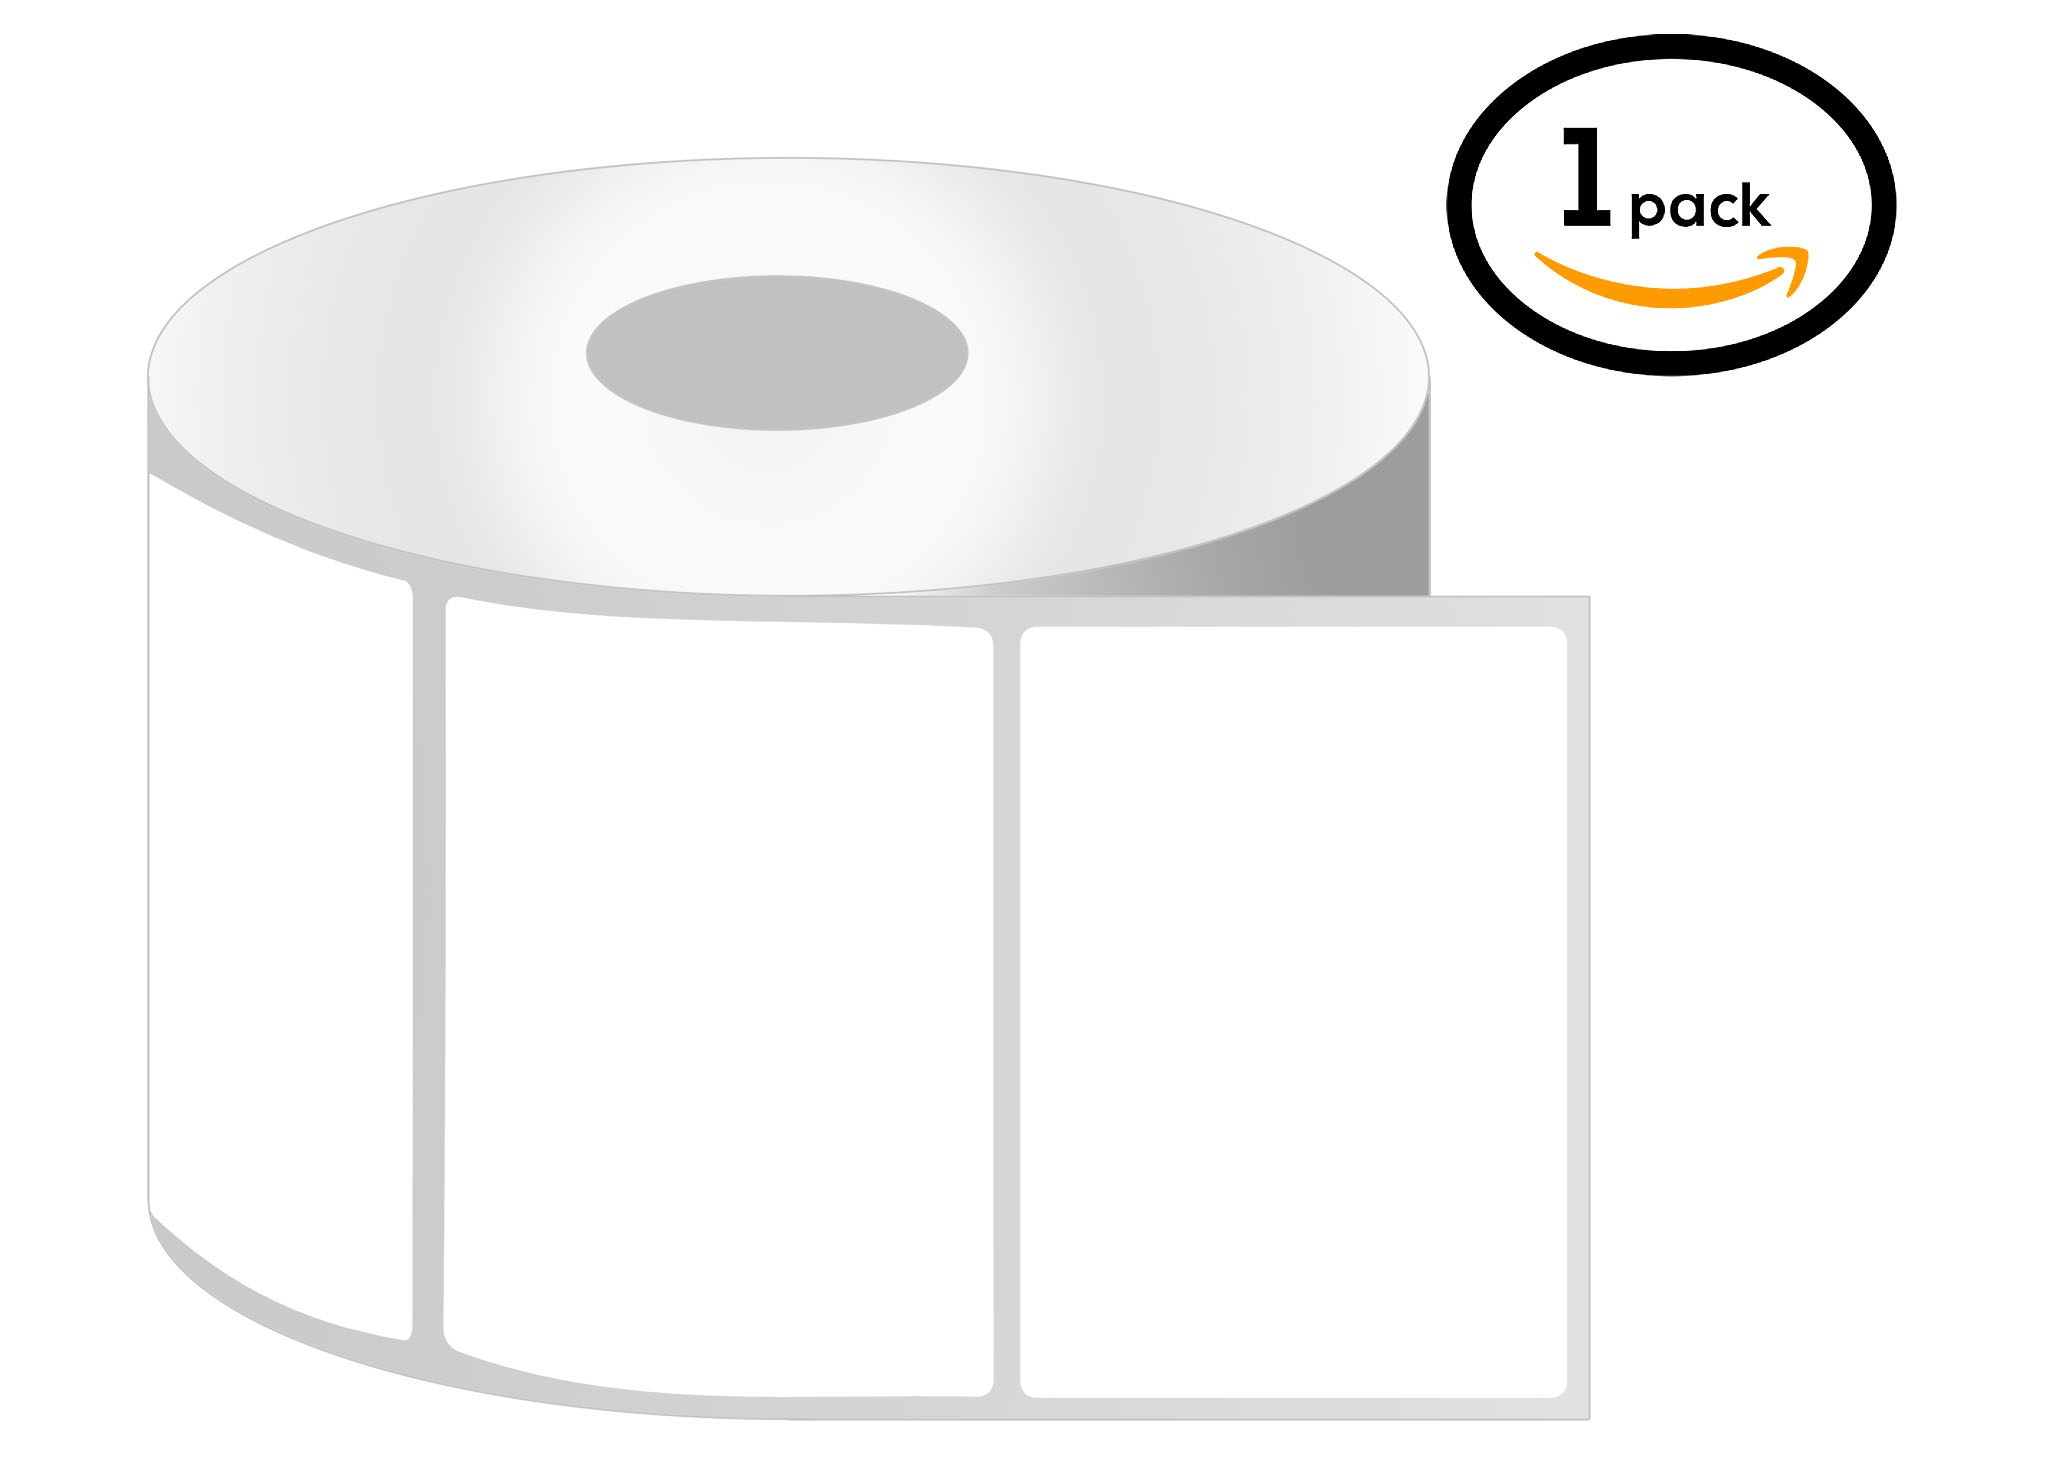 1 Inch Core - 2 x 1.5 Zebra Compatible Direct Thermal Labels 1 Roll